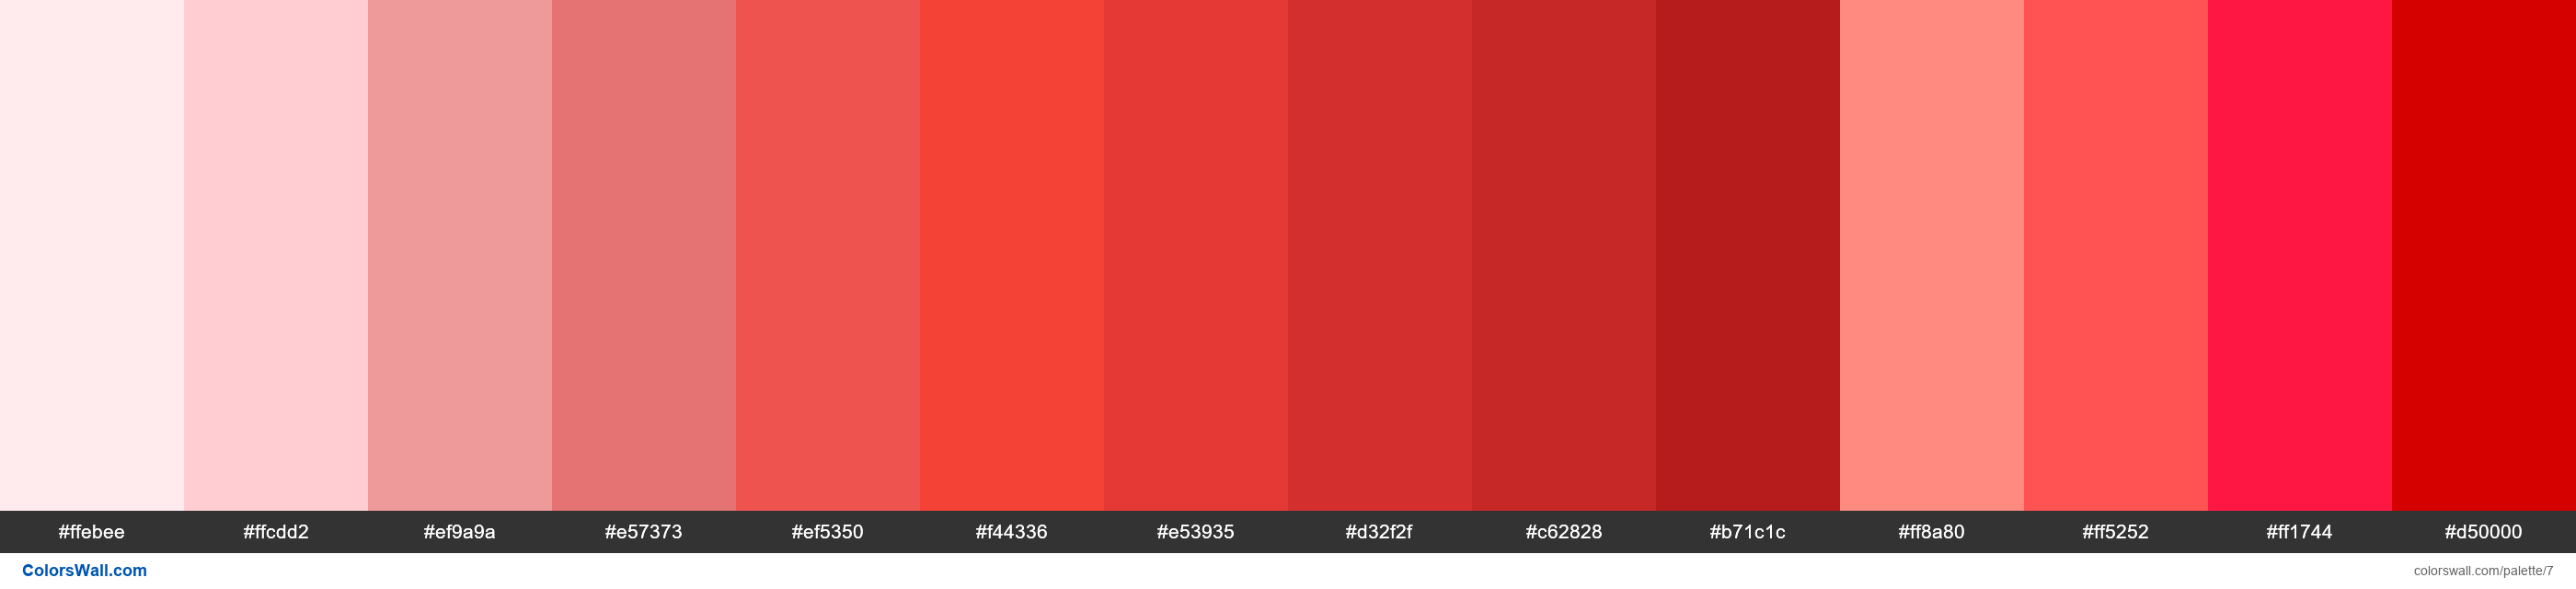 Red palette Materialize CSS - #7